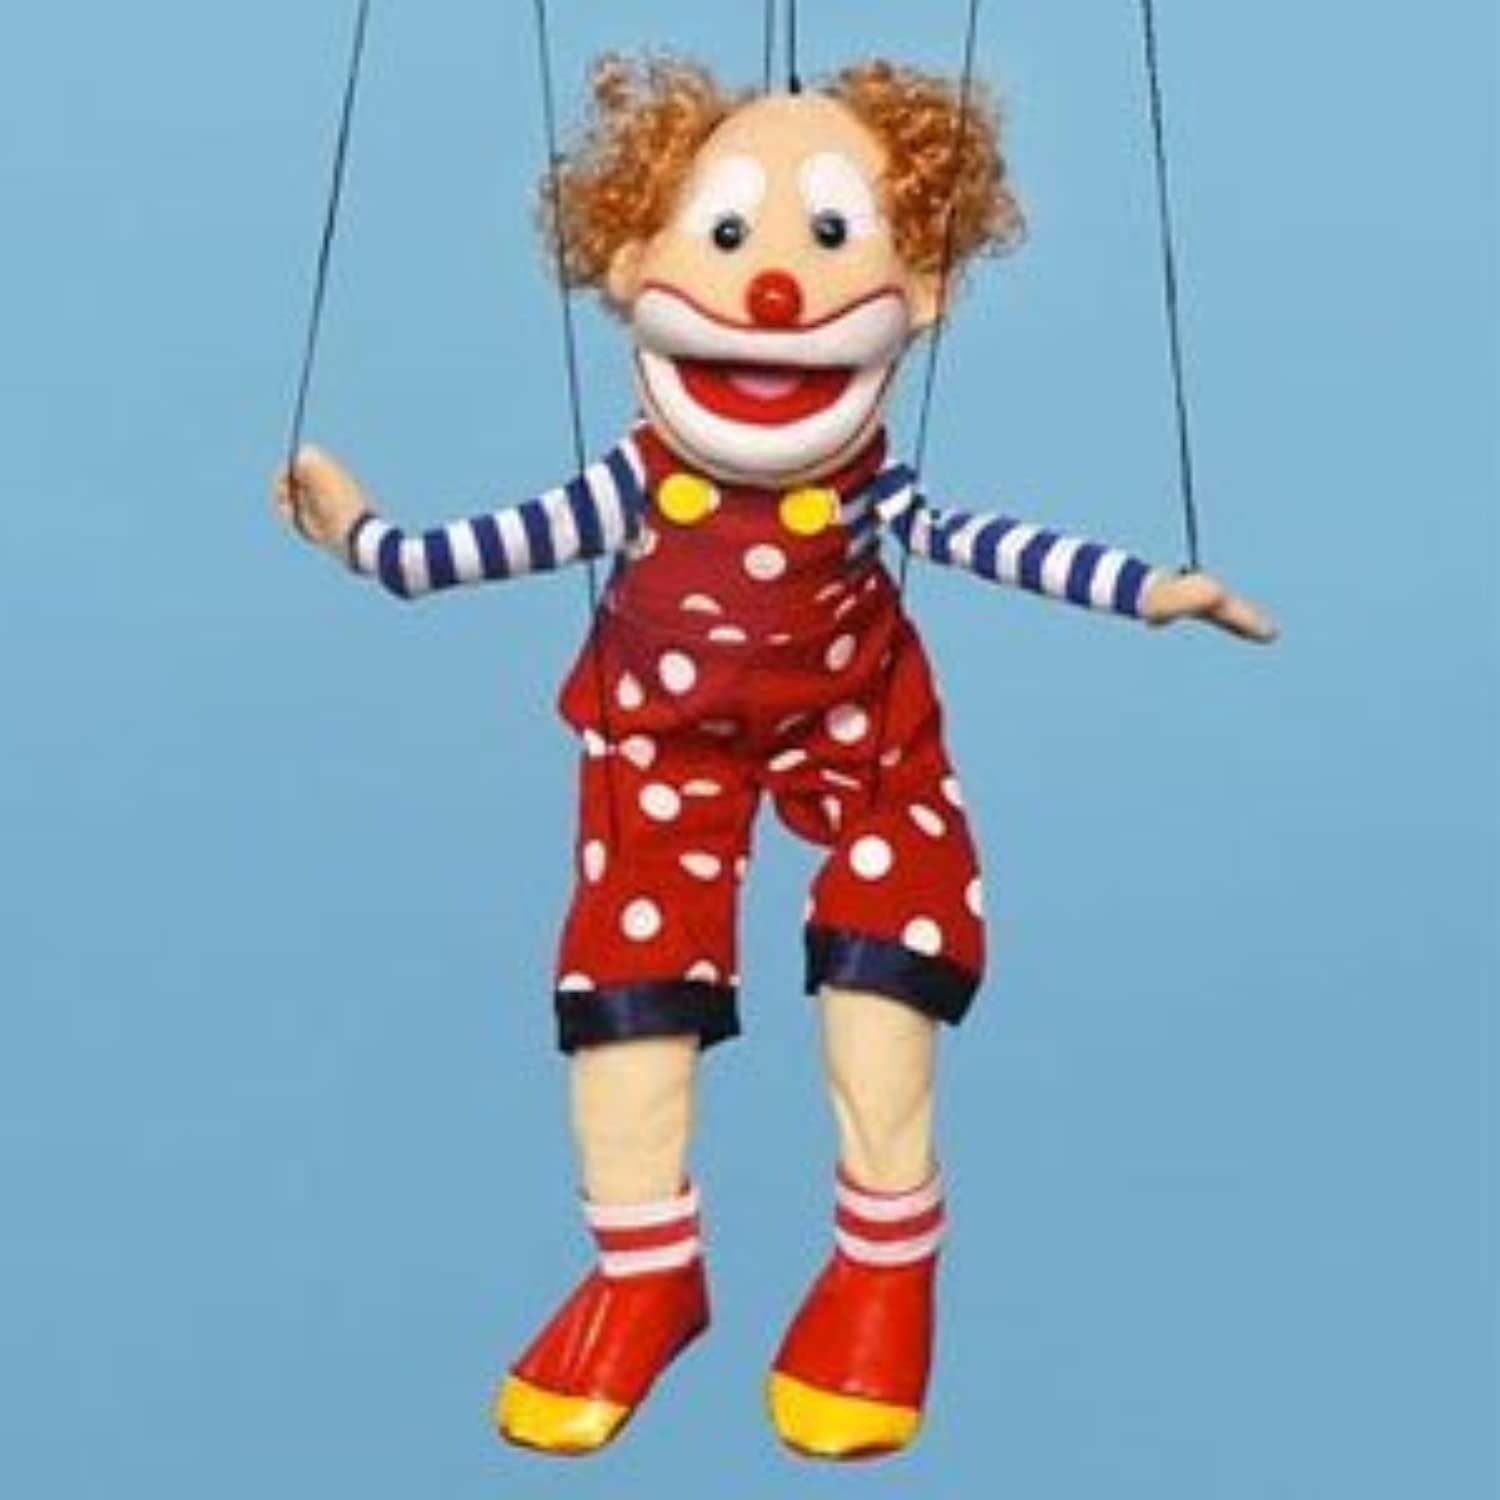 Sunny Puppets Bald Clown Marionette by Sunny Puppets